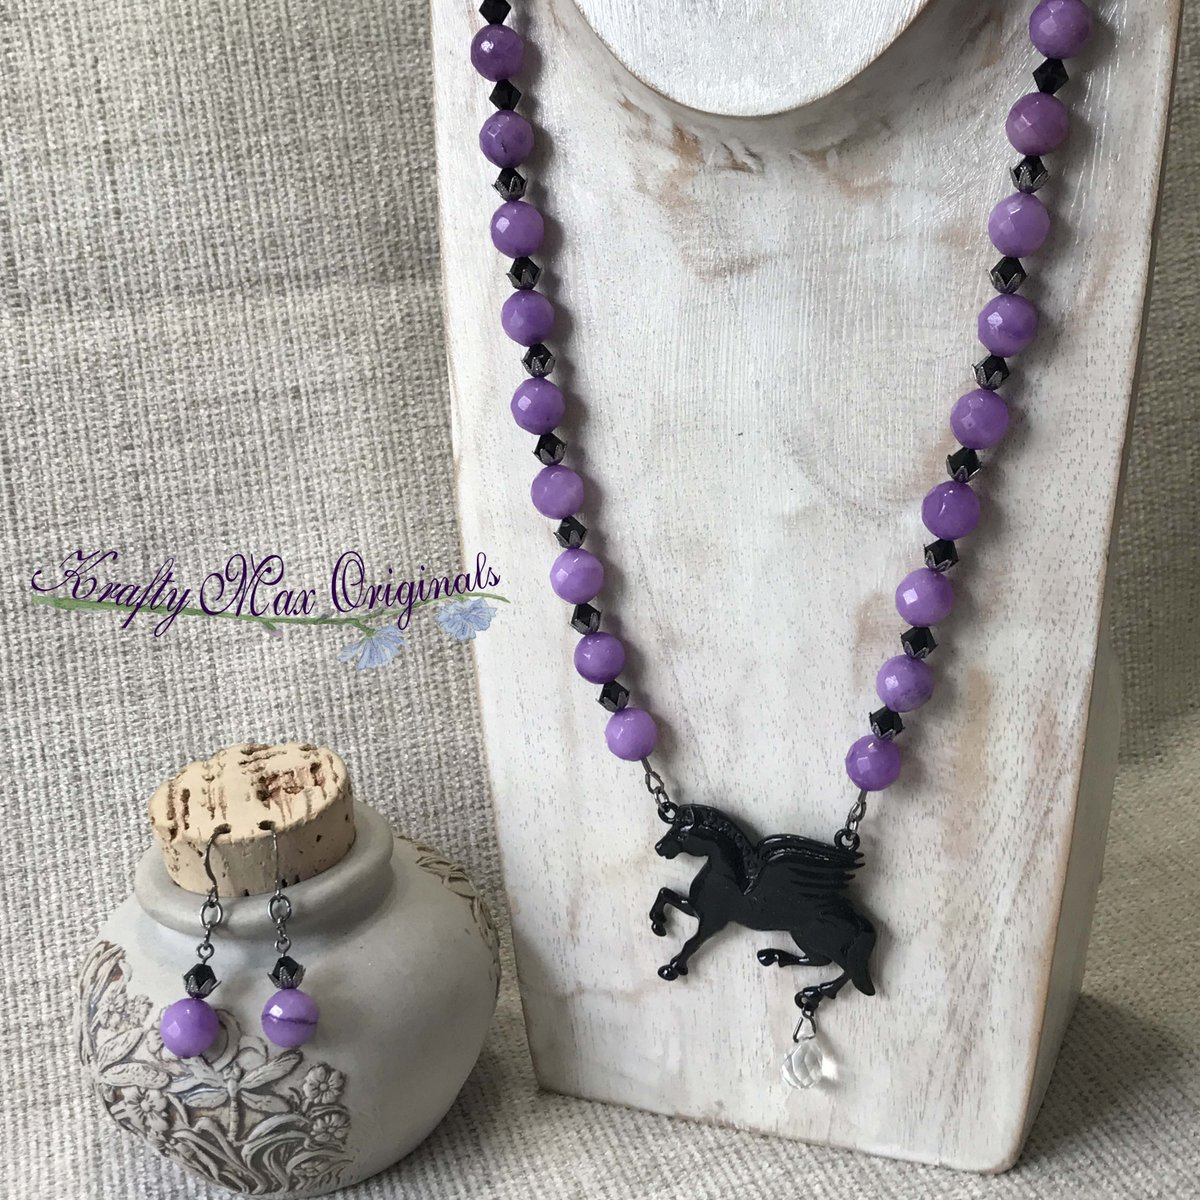 Black Horse and Purple Faceted Gemstones Necklace and Earrings Set (discounted from $42 down to $20)  #handmade #jewelry #buyhandmade #handmadelove #handcrafted #kraftymax #kmax #discount #sale #bargain #save #clearance